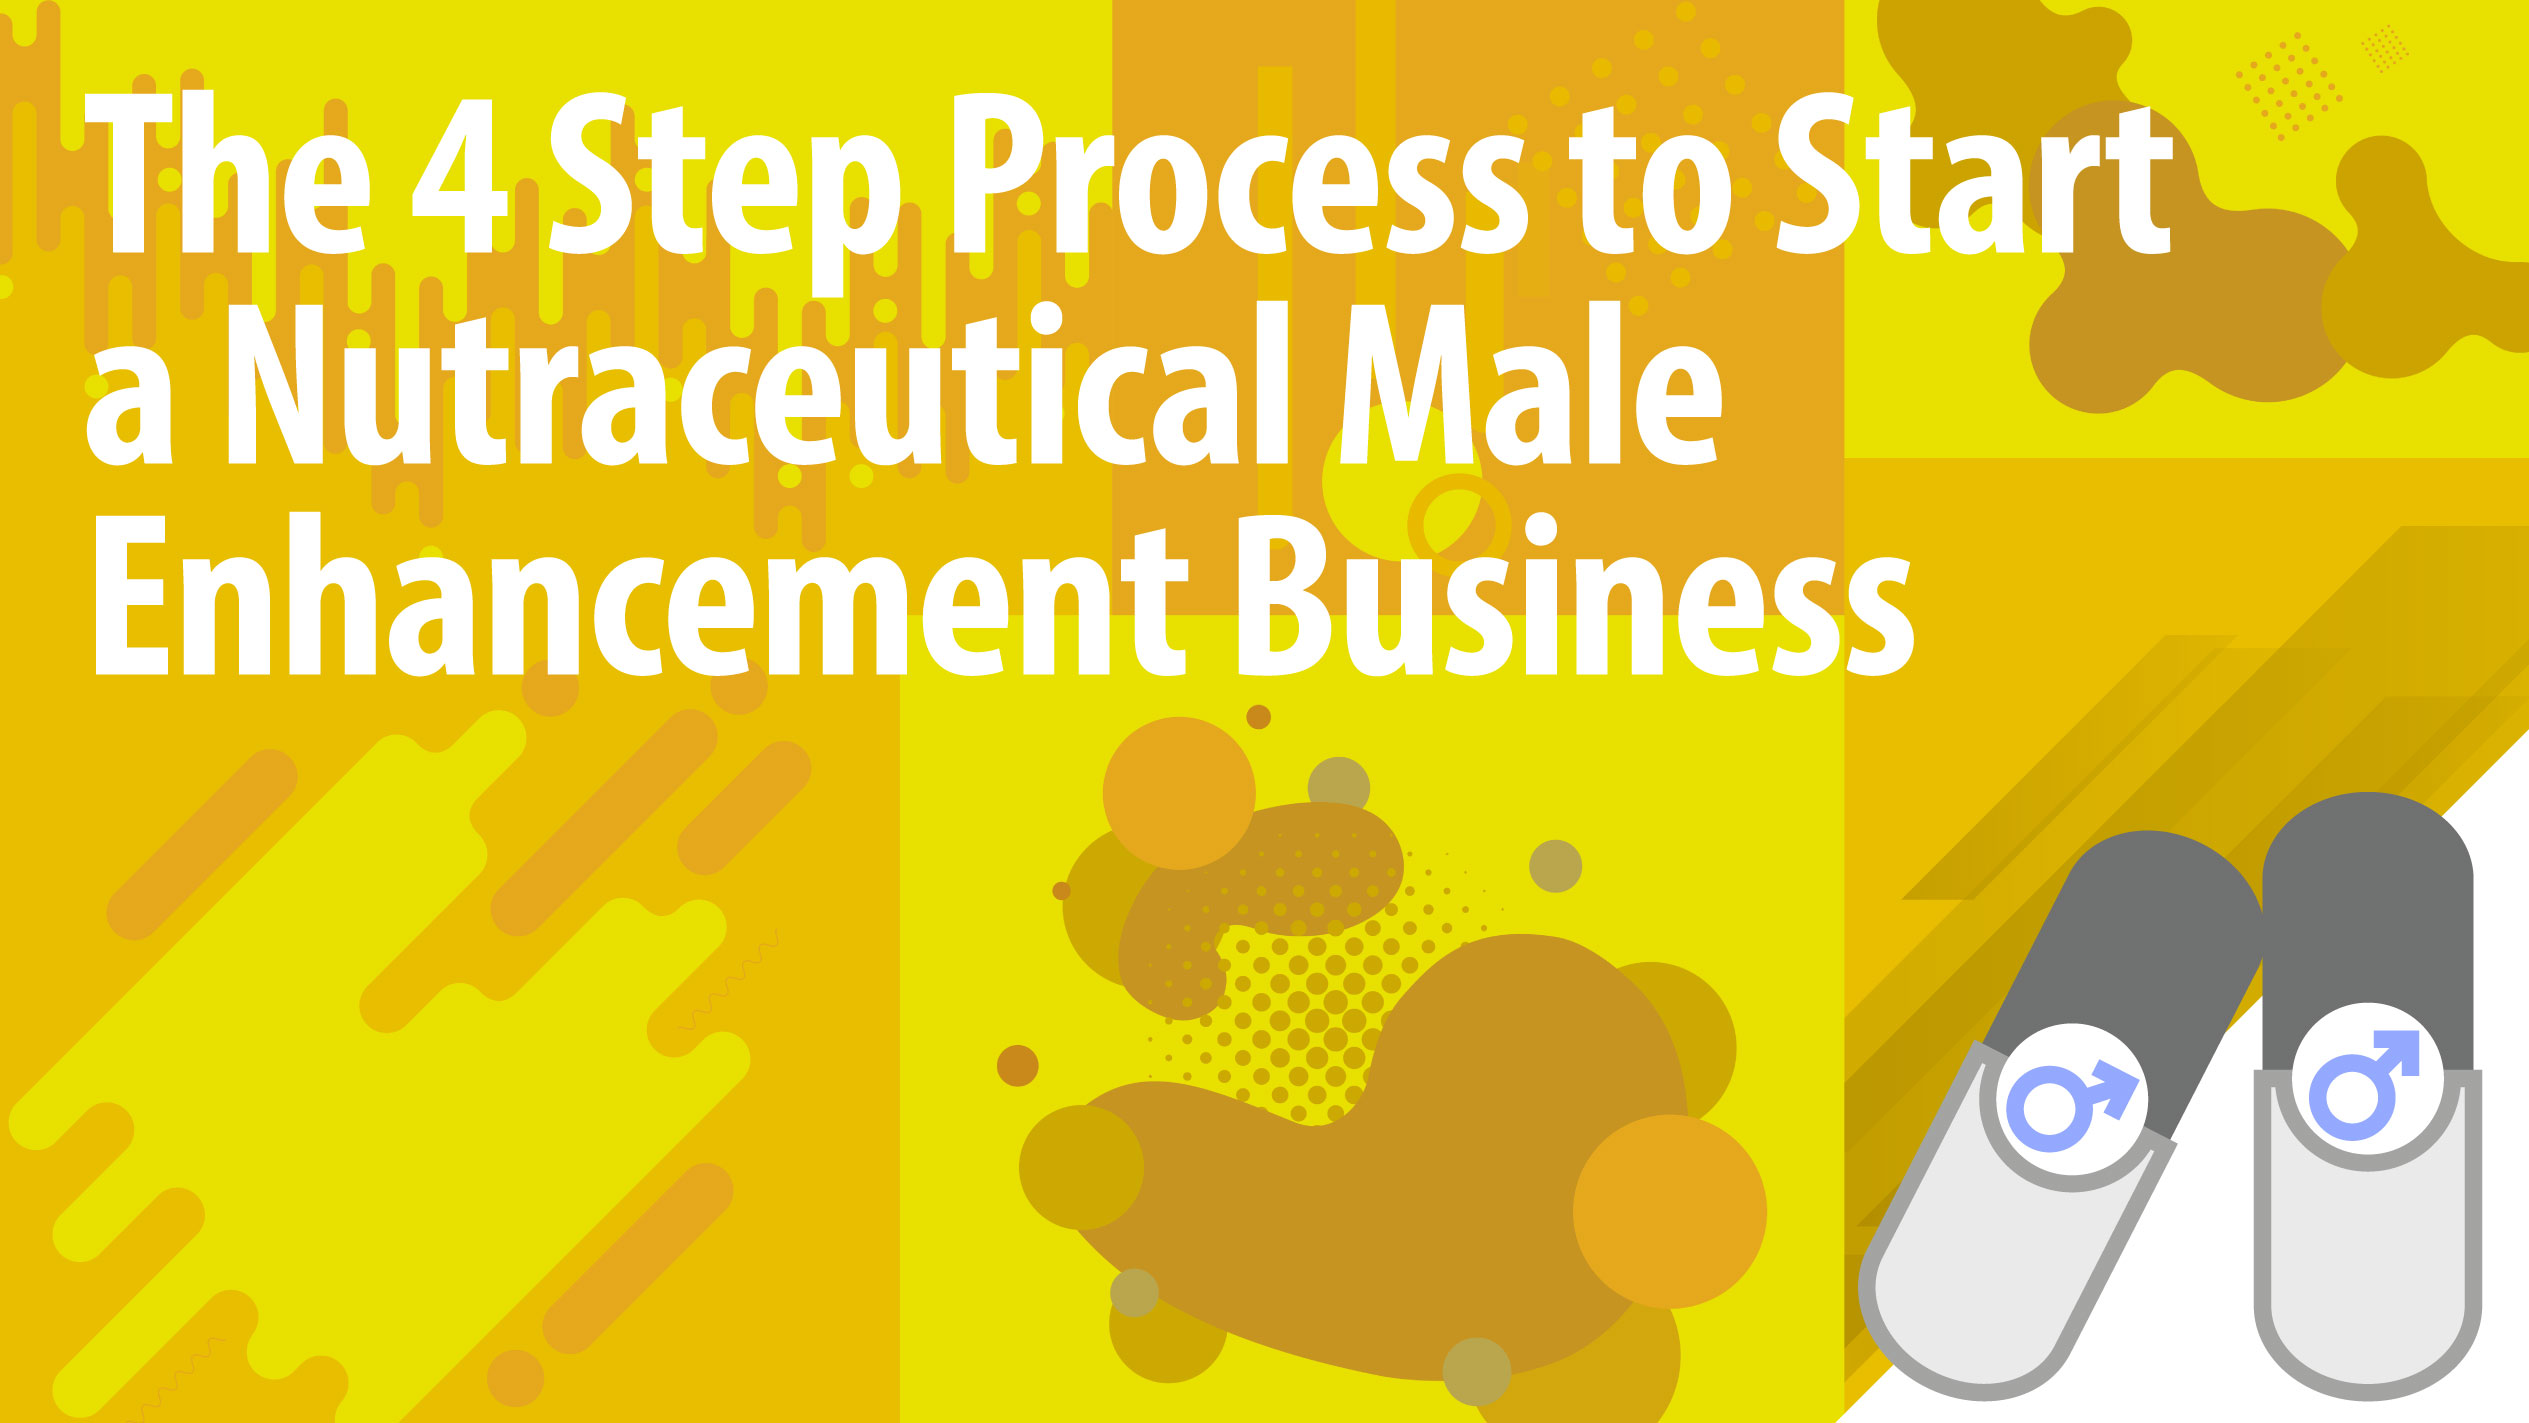 The 4 Step Process to Start a Nutraceutical Male Enhancement Business